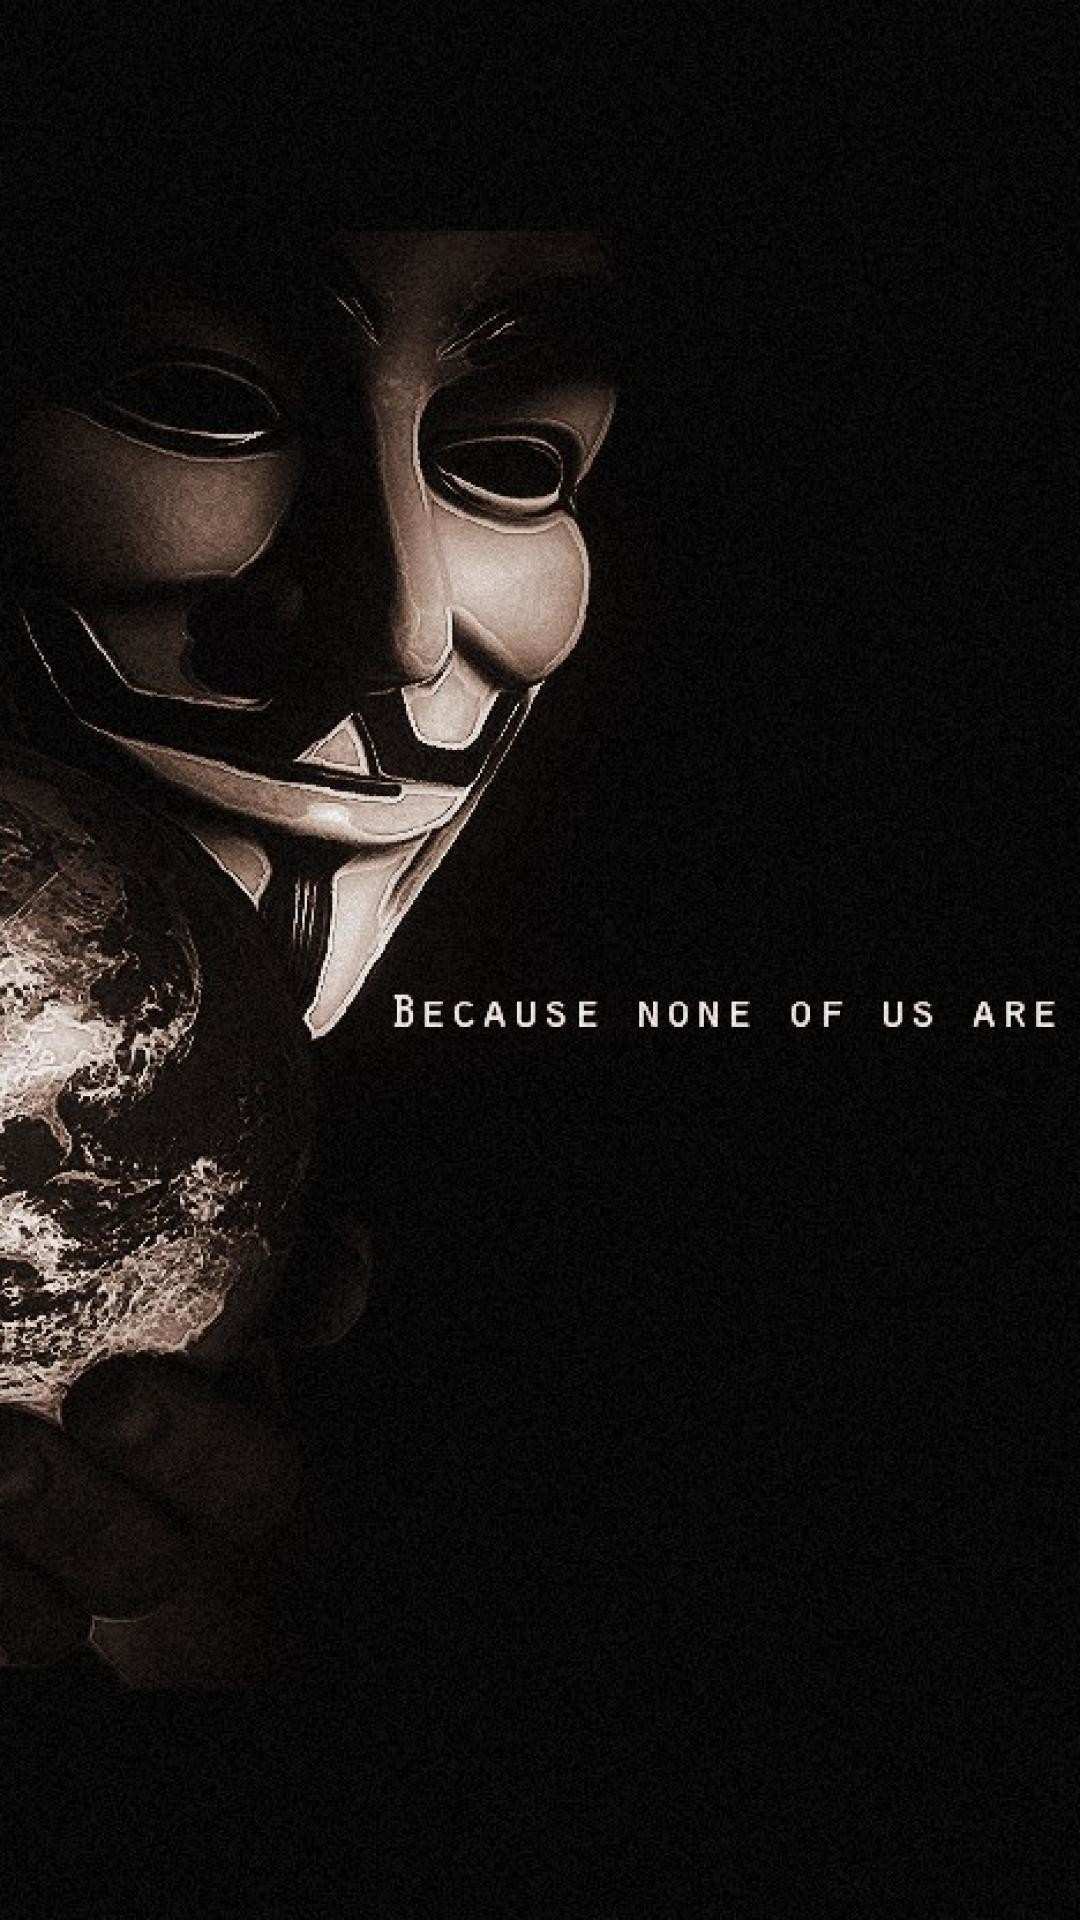 … Anonymous Hd Wallpaper And Wallpaper. Download